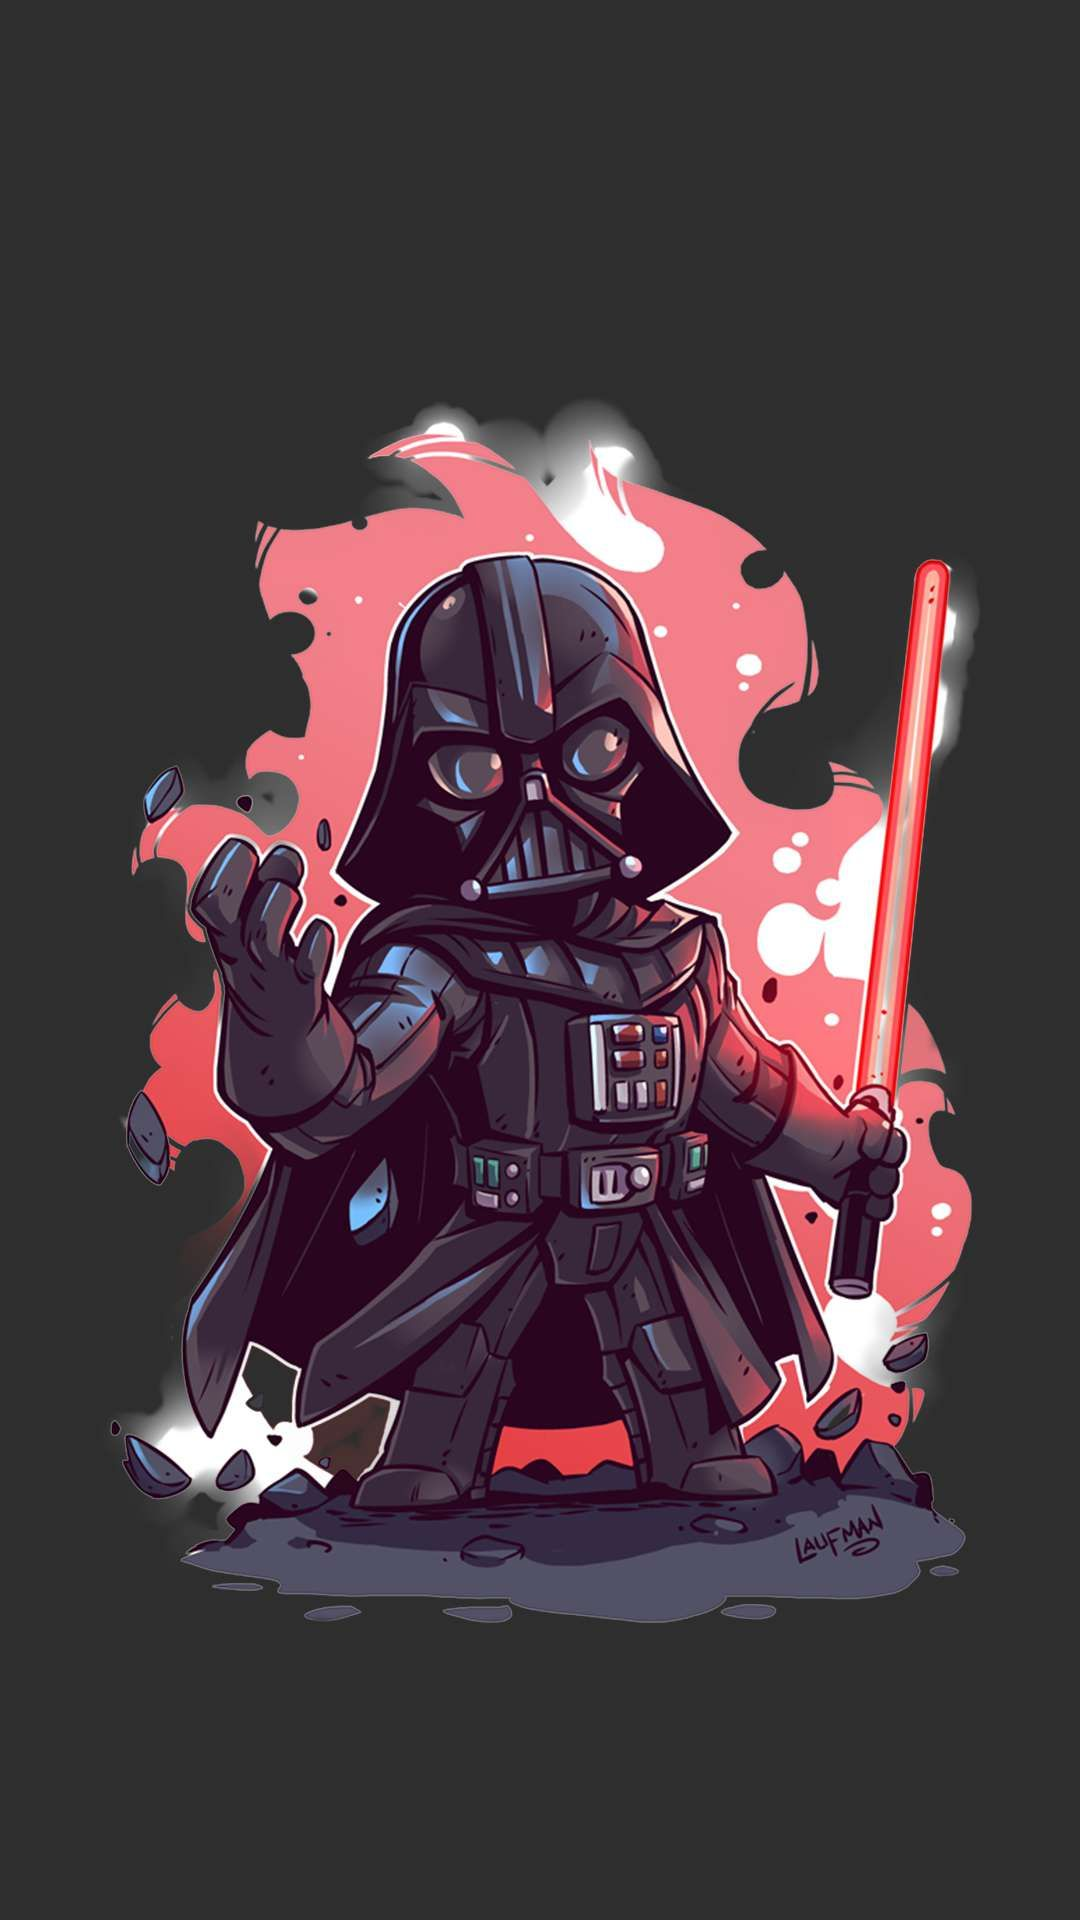 Darth_Vader_Star_Wars iPhone Wallpaper Star wars fan art